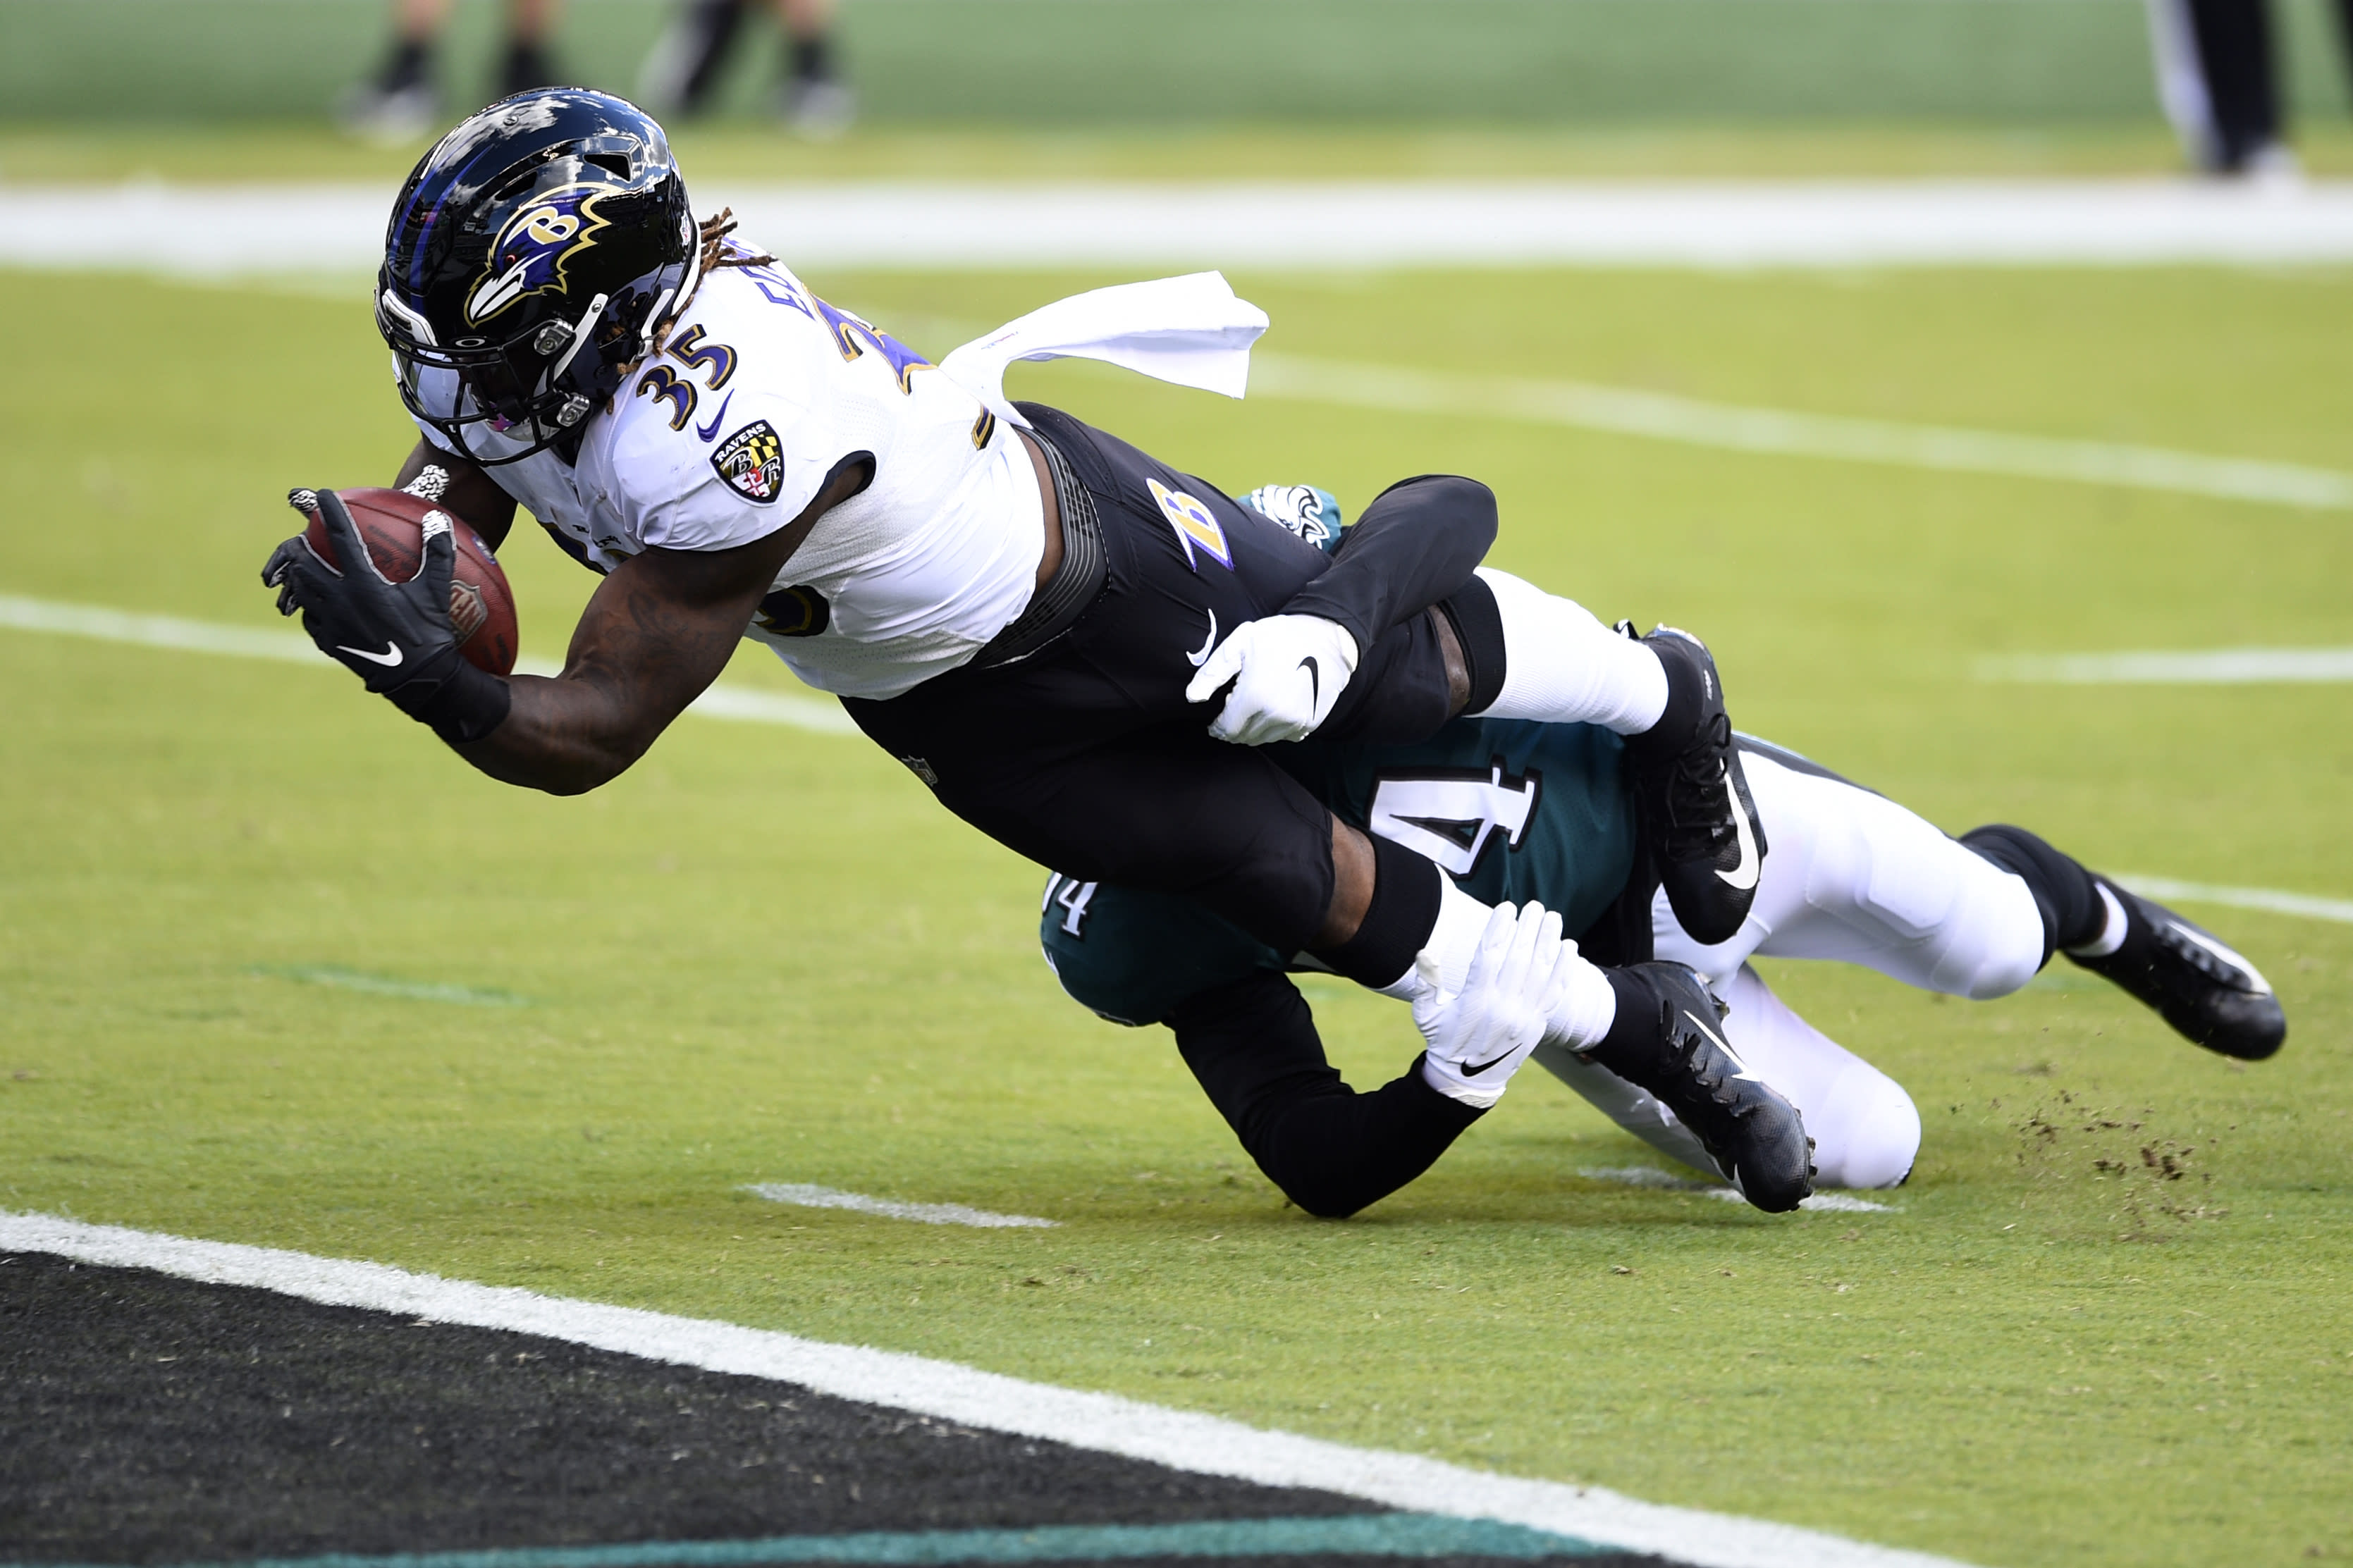 Baltimore Ravens' Gus Edwards (35) scores a touchdown as Philadelphia Eagles' Shaun Bradley (54) during the first half of an NFL football game, Sunday, Oct. 18, 2020, in Philadelphia. (AP Photo/Derik Hamilton)